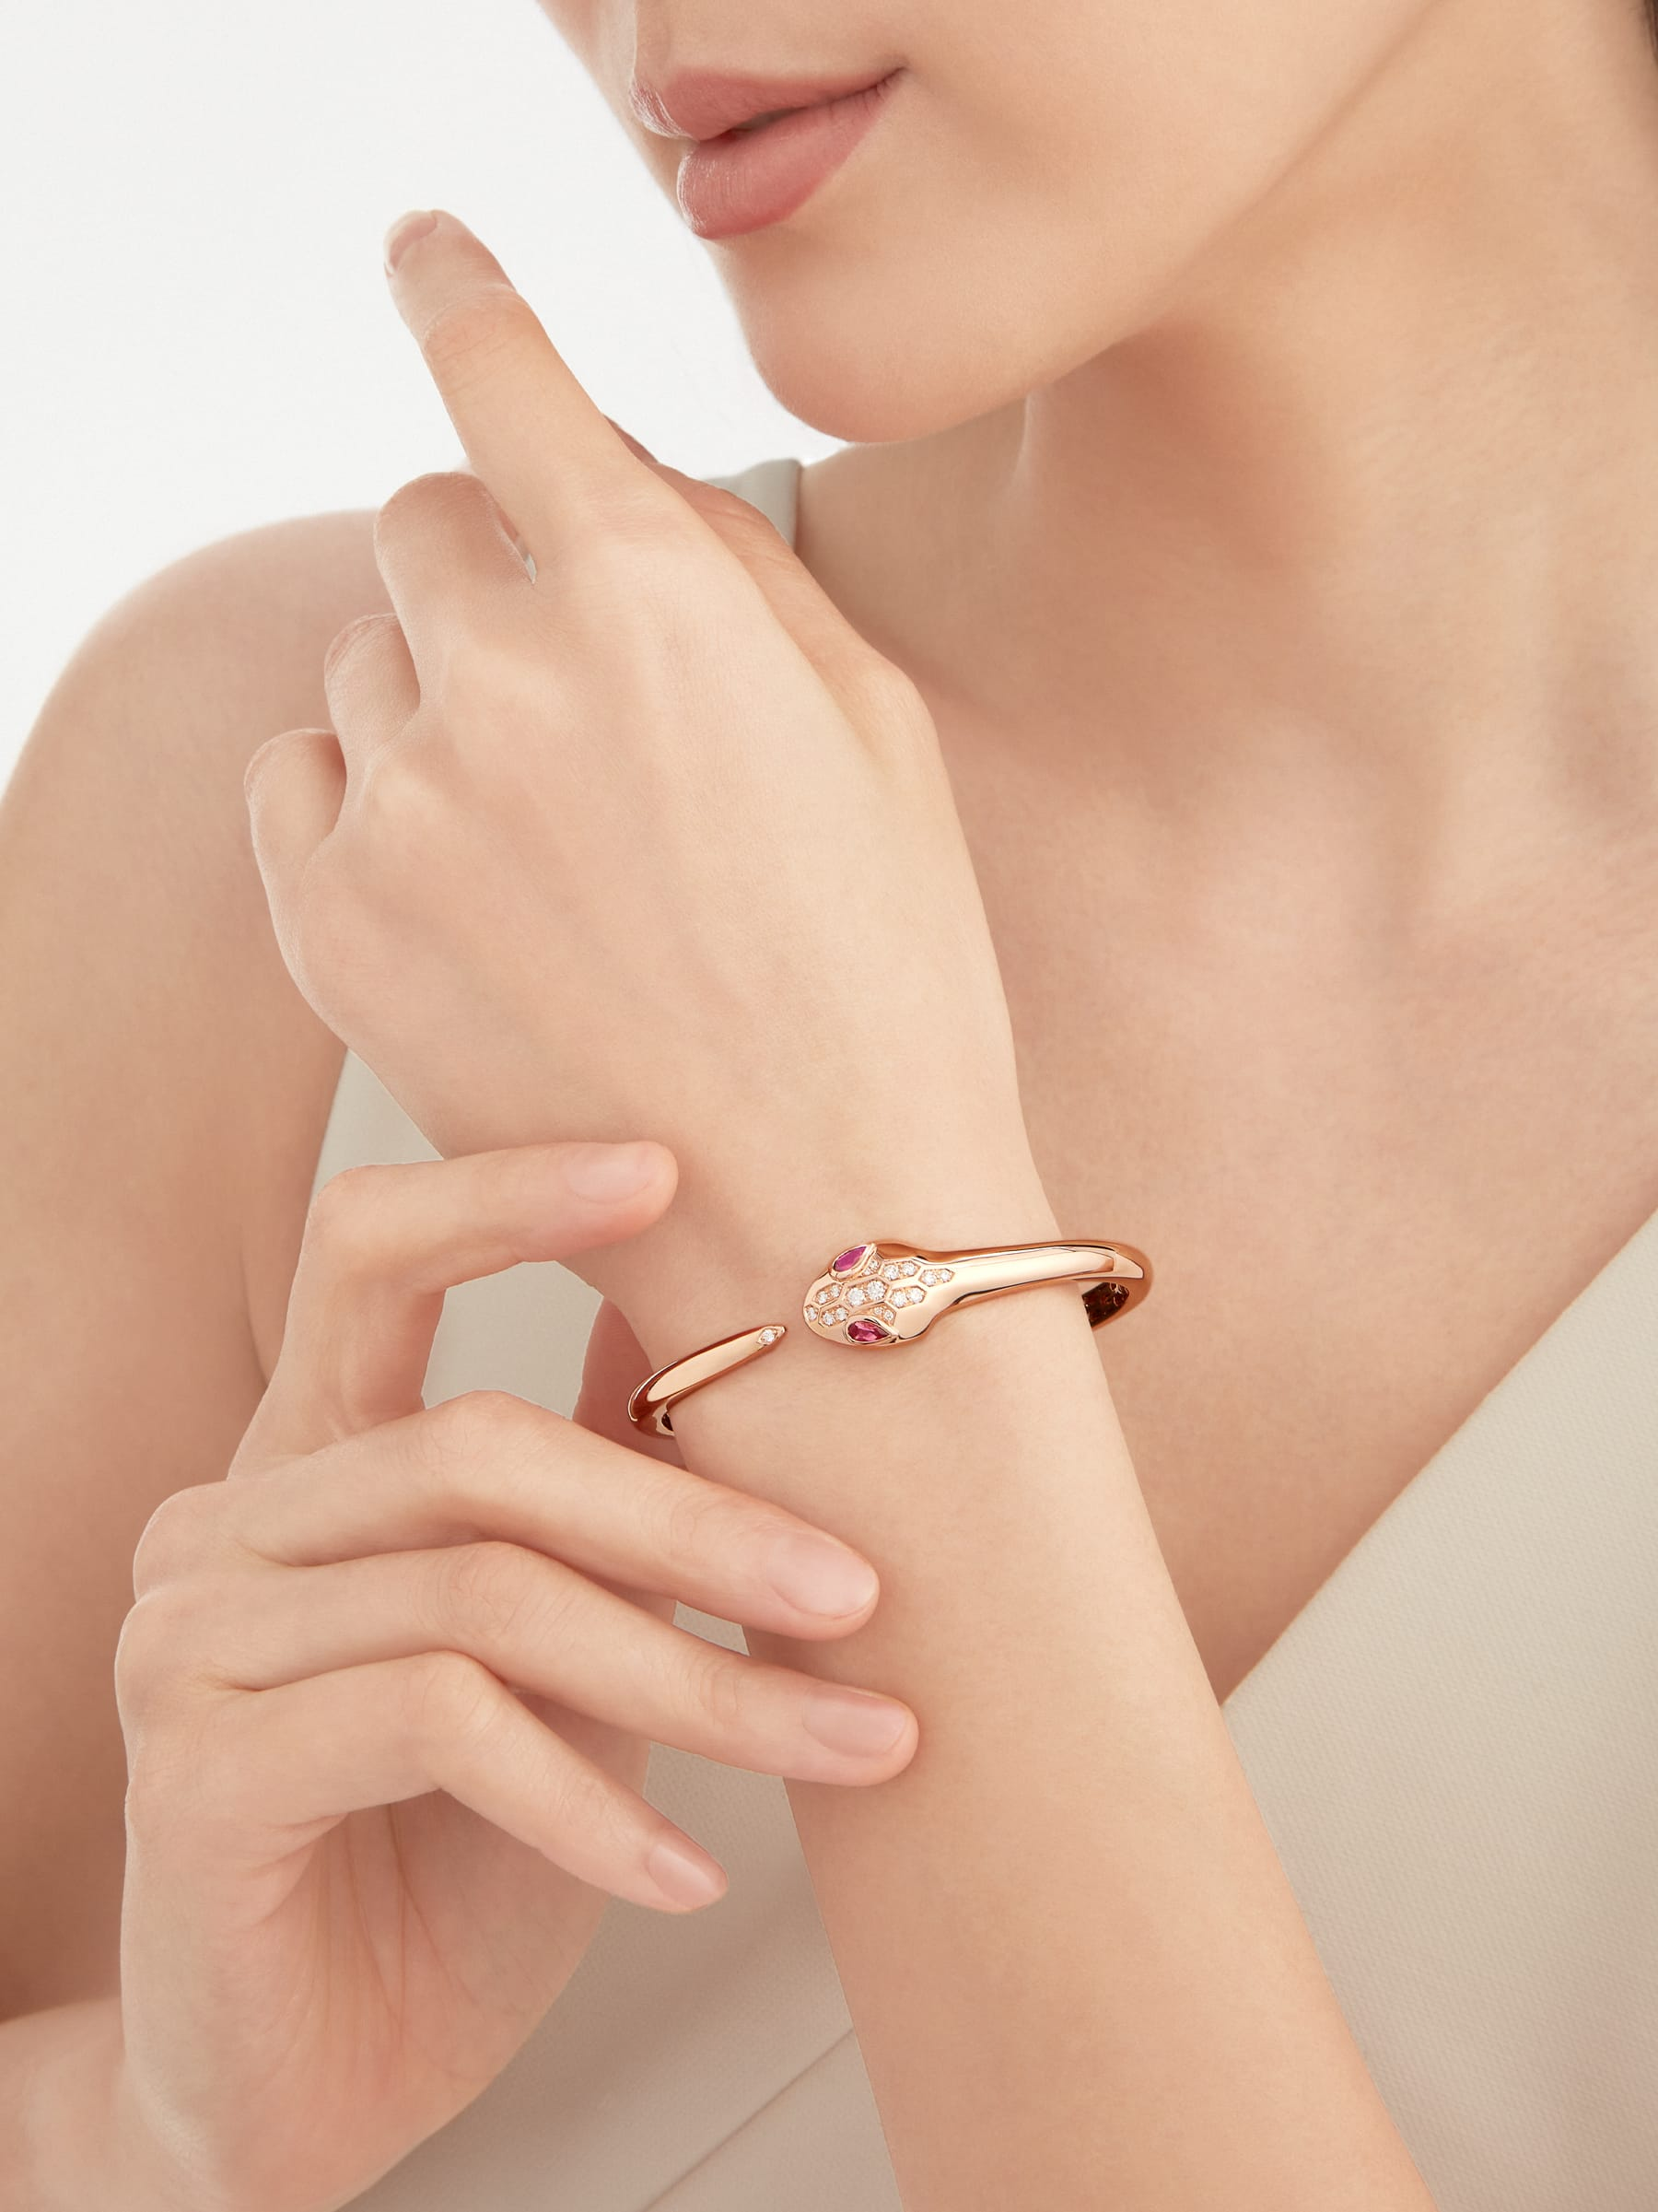 Serpenti bracelet in 18 kt rose gold, set with rubellite eyes and demi-pavé diamonds on the head and the tail. BR857813 image 1